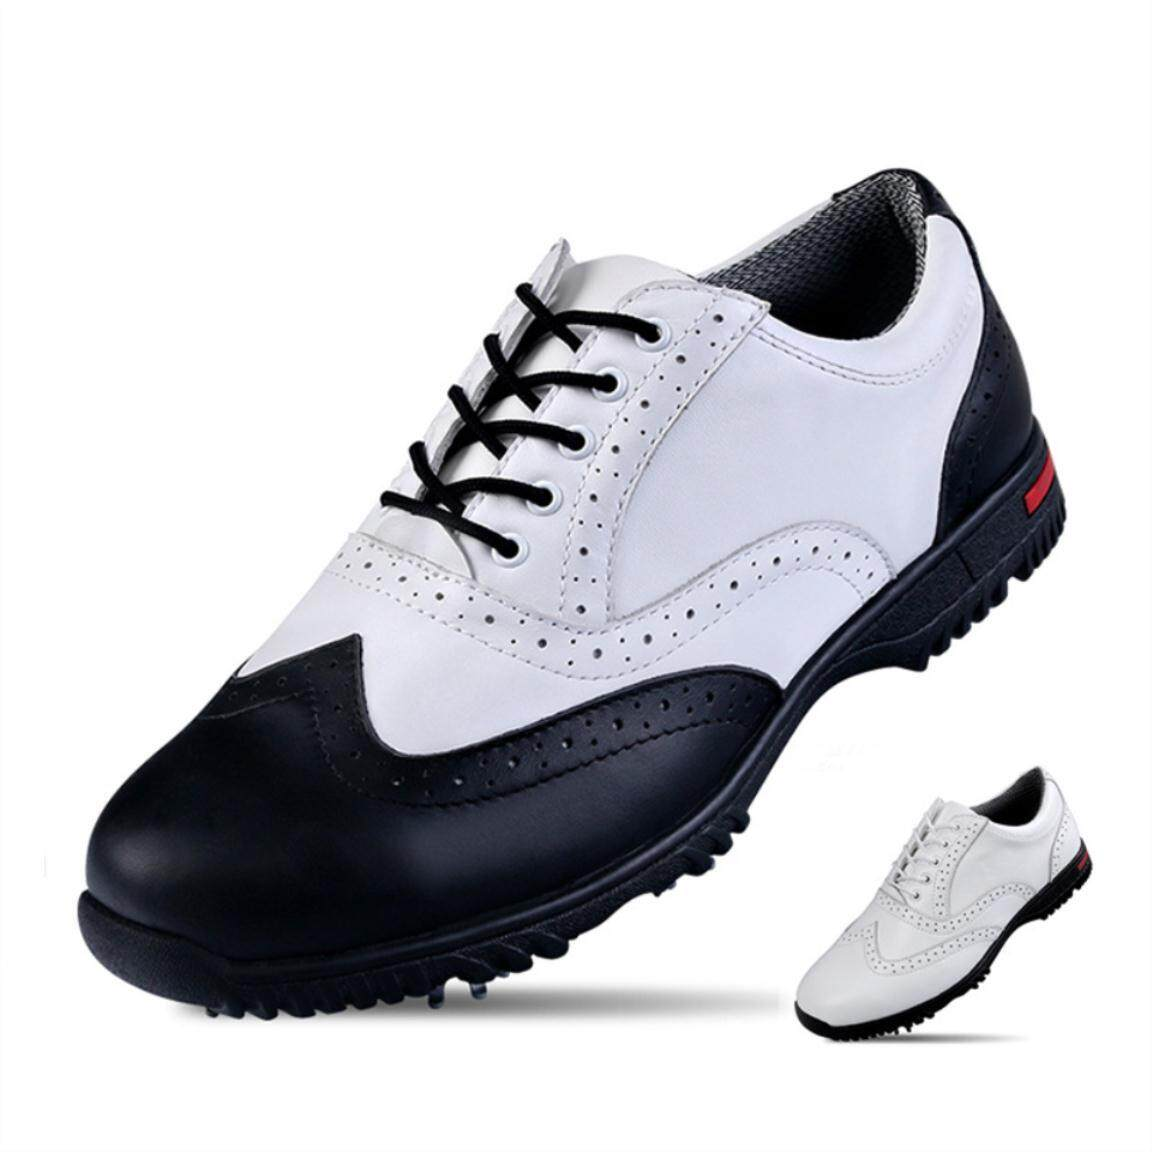 2018 Golf Shoes Mens Sports Nails Shoes Waterproof Antiskid Shoes. By Aukey Mall